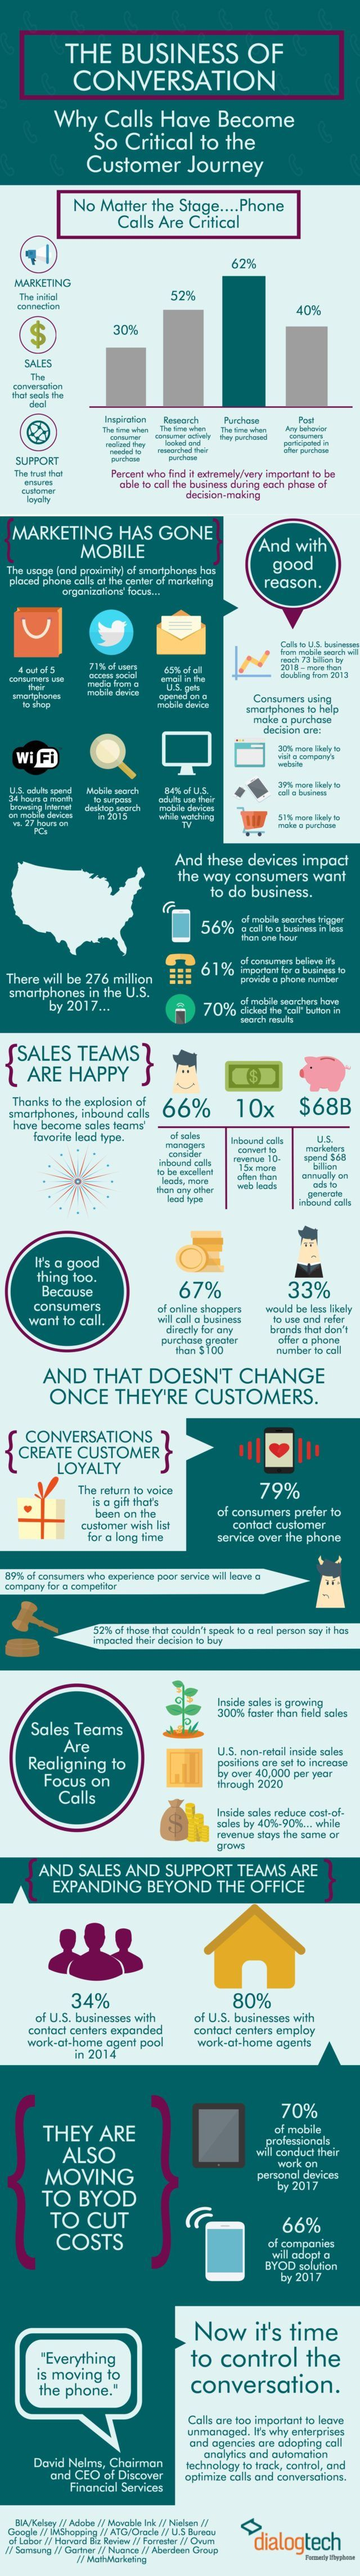 The Business of Conversation